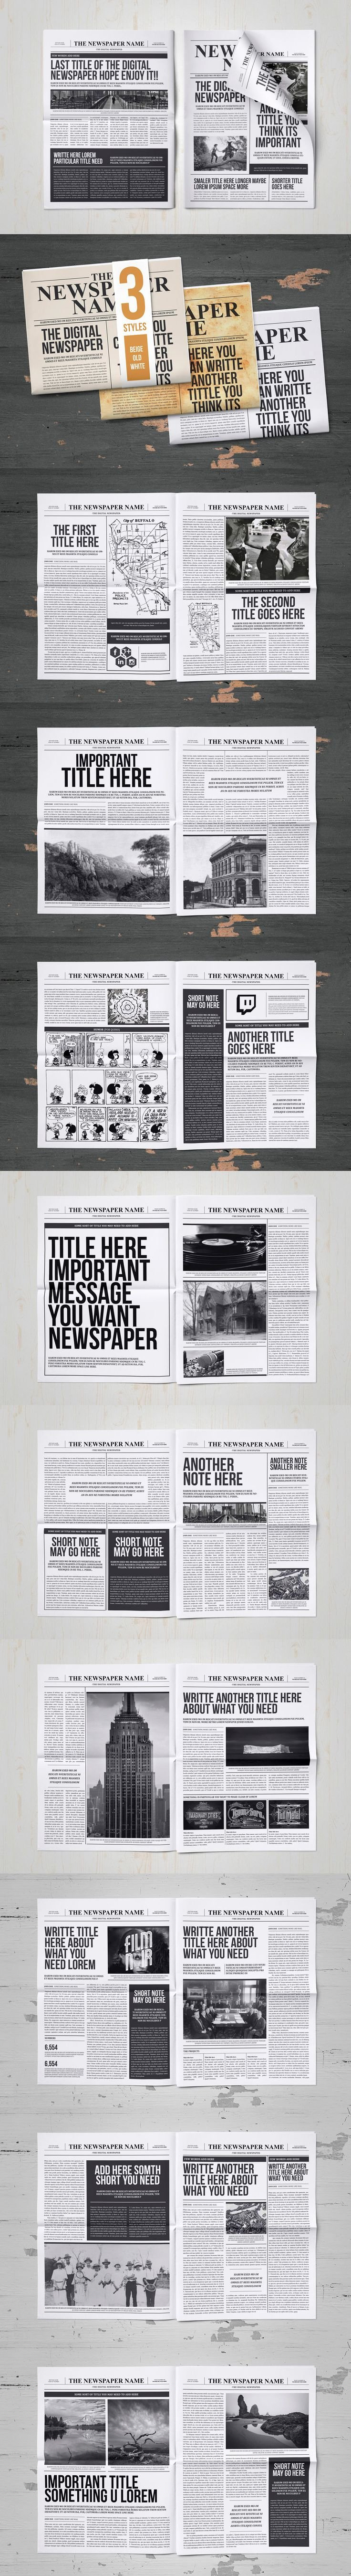 Newspaper Template Indesign Free Awesome Best 25 Indesign Newspaper Template Ideas On Pinterest